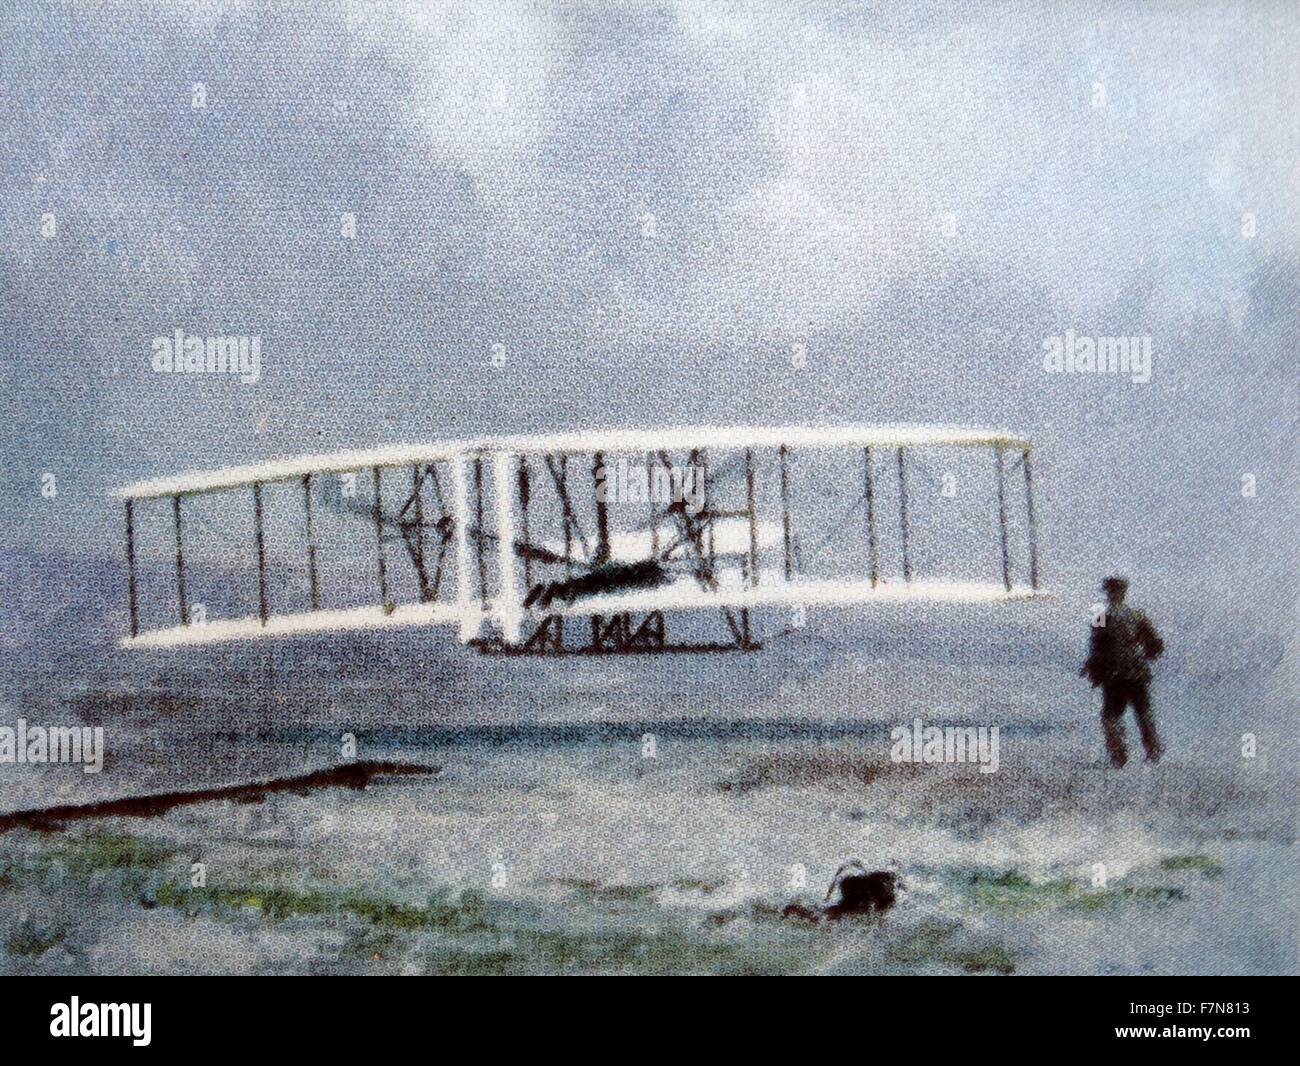 The first powered flightby the wright brothers, at Kitty Hawk. - Stock Image